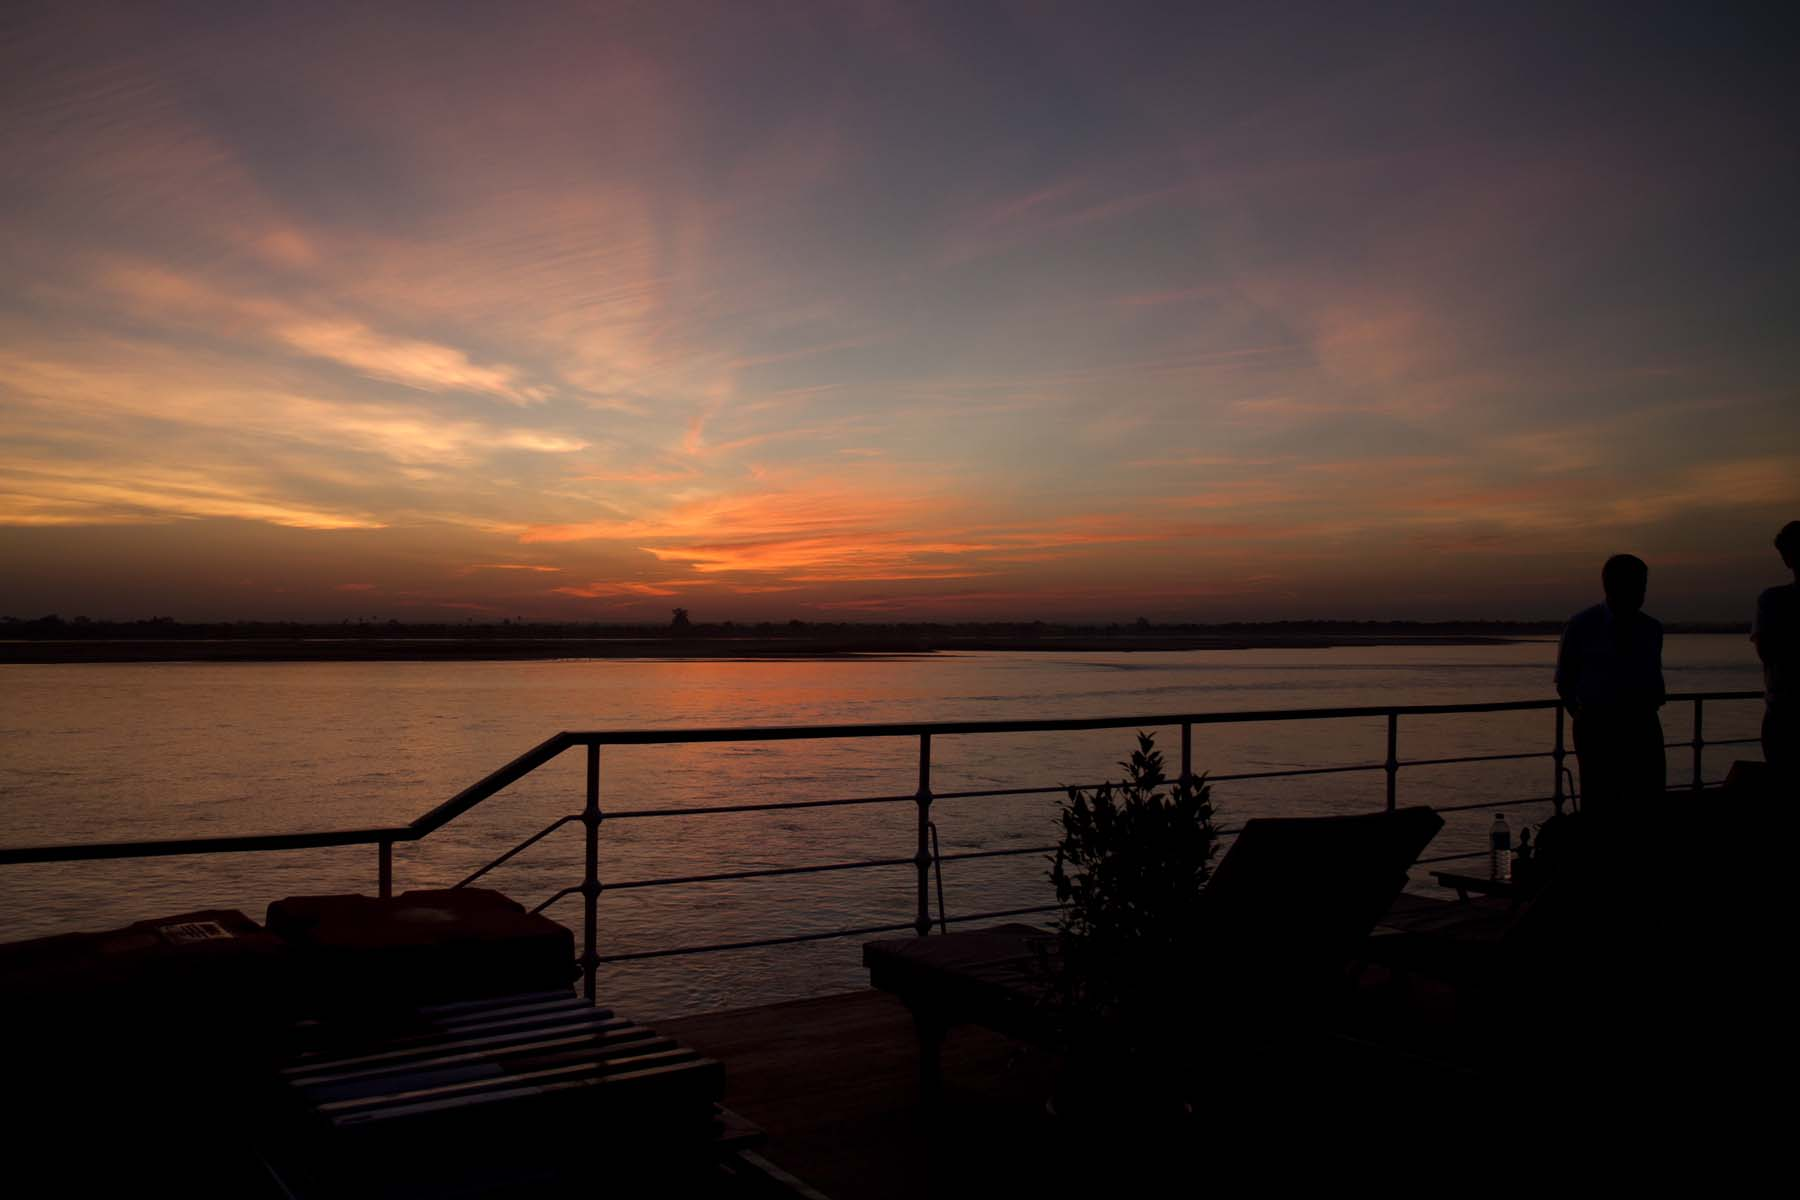 Sun setting on the Irrawaddy River